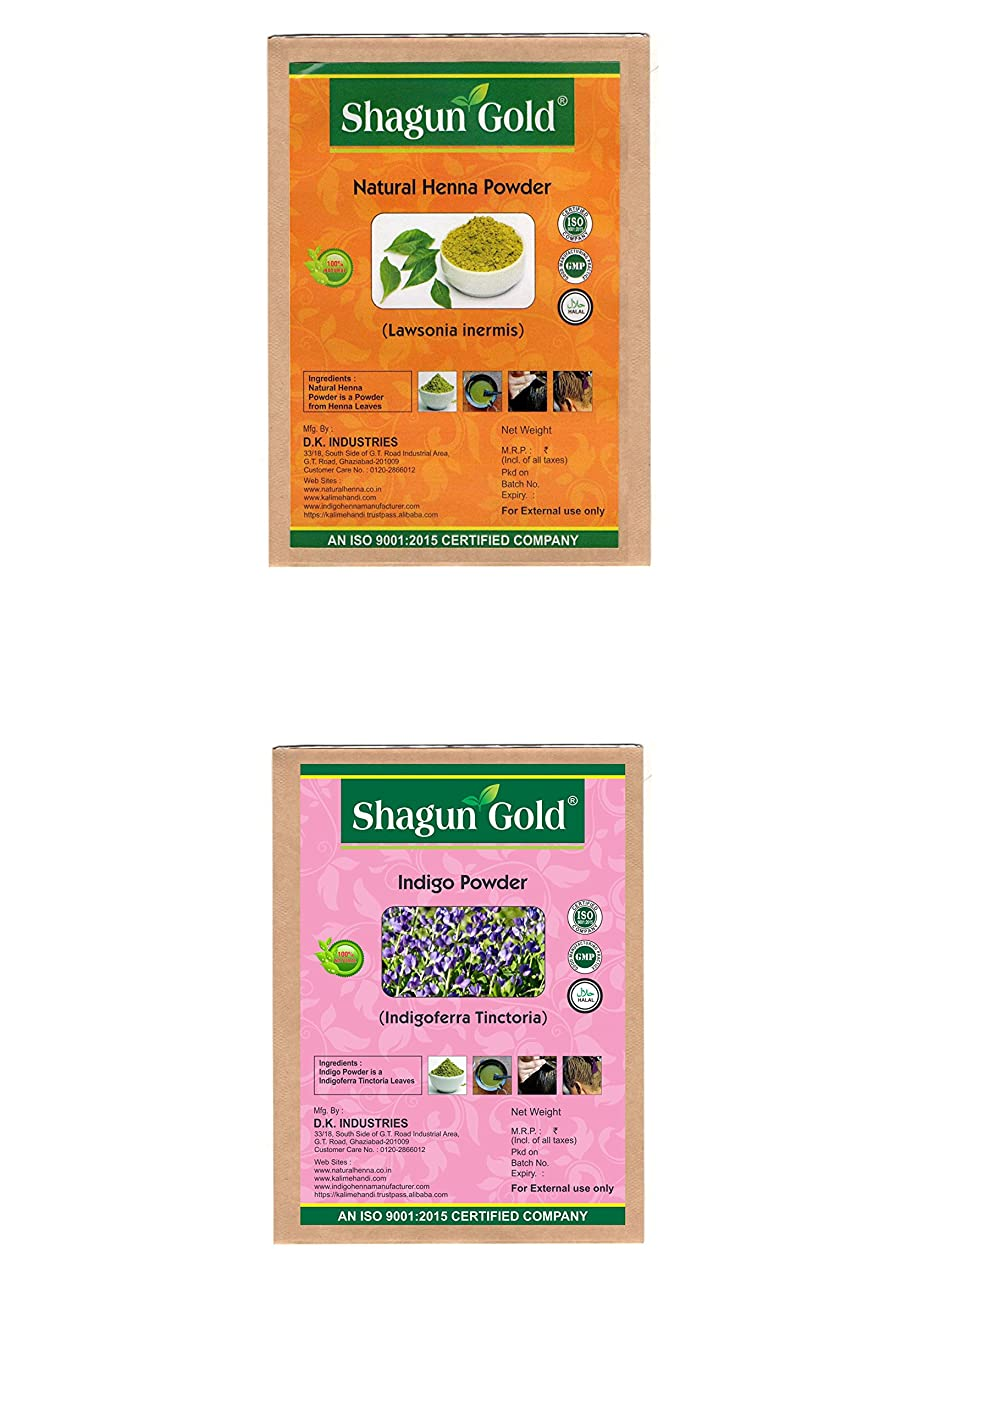 公首尾一貫したマッシュShagun Gold A 100% Natural ( Indigofera Tinctoria )/( lawsonia Inermis ) Narutal Henna And Ingo Powder For Hair Certified By Gmp / Halal / ISO-9001-2015 No Ammonia, No PPD, Chemical Free 28 Oz / ( 1 / 2 lb ) / 800g